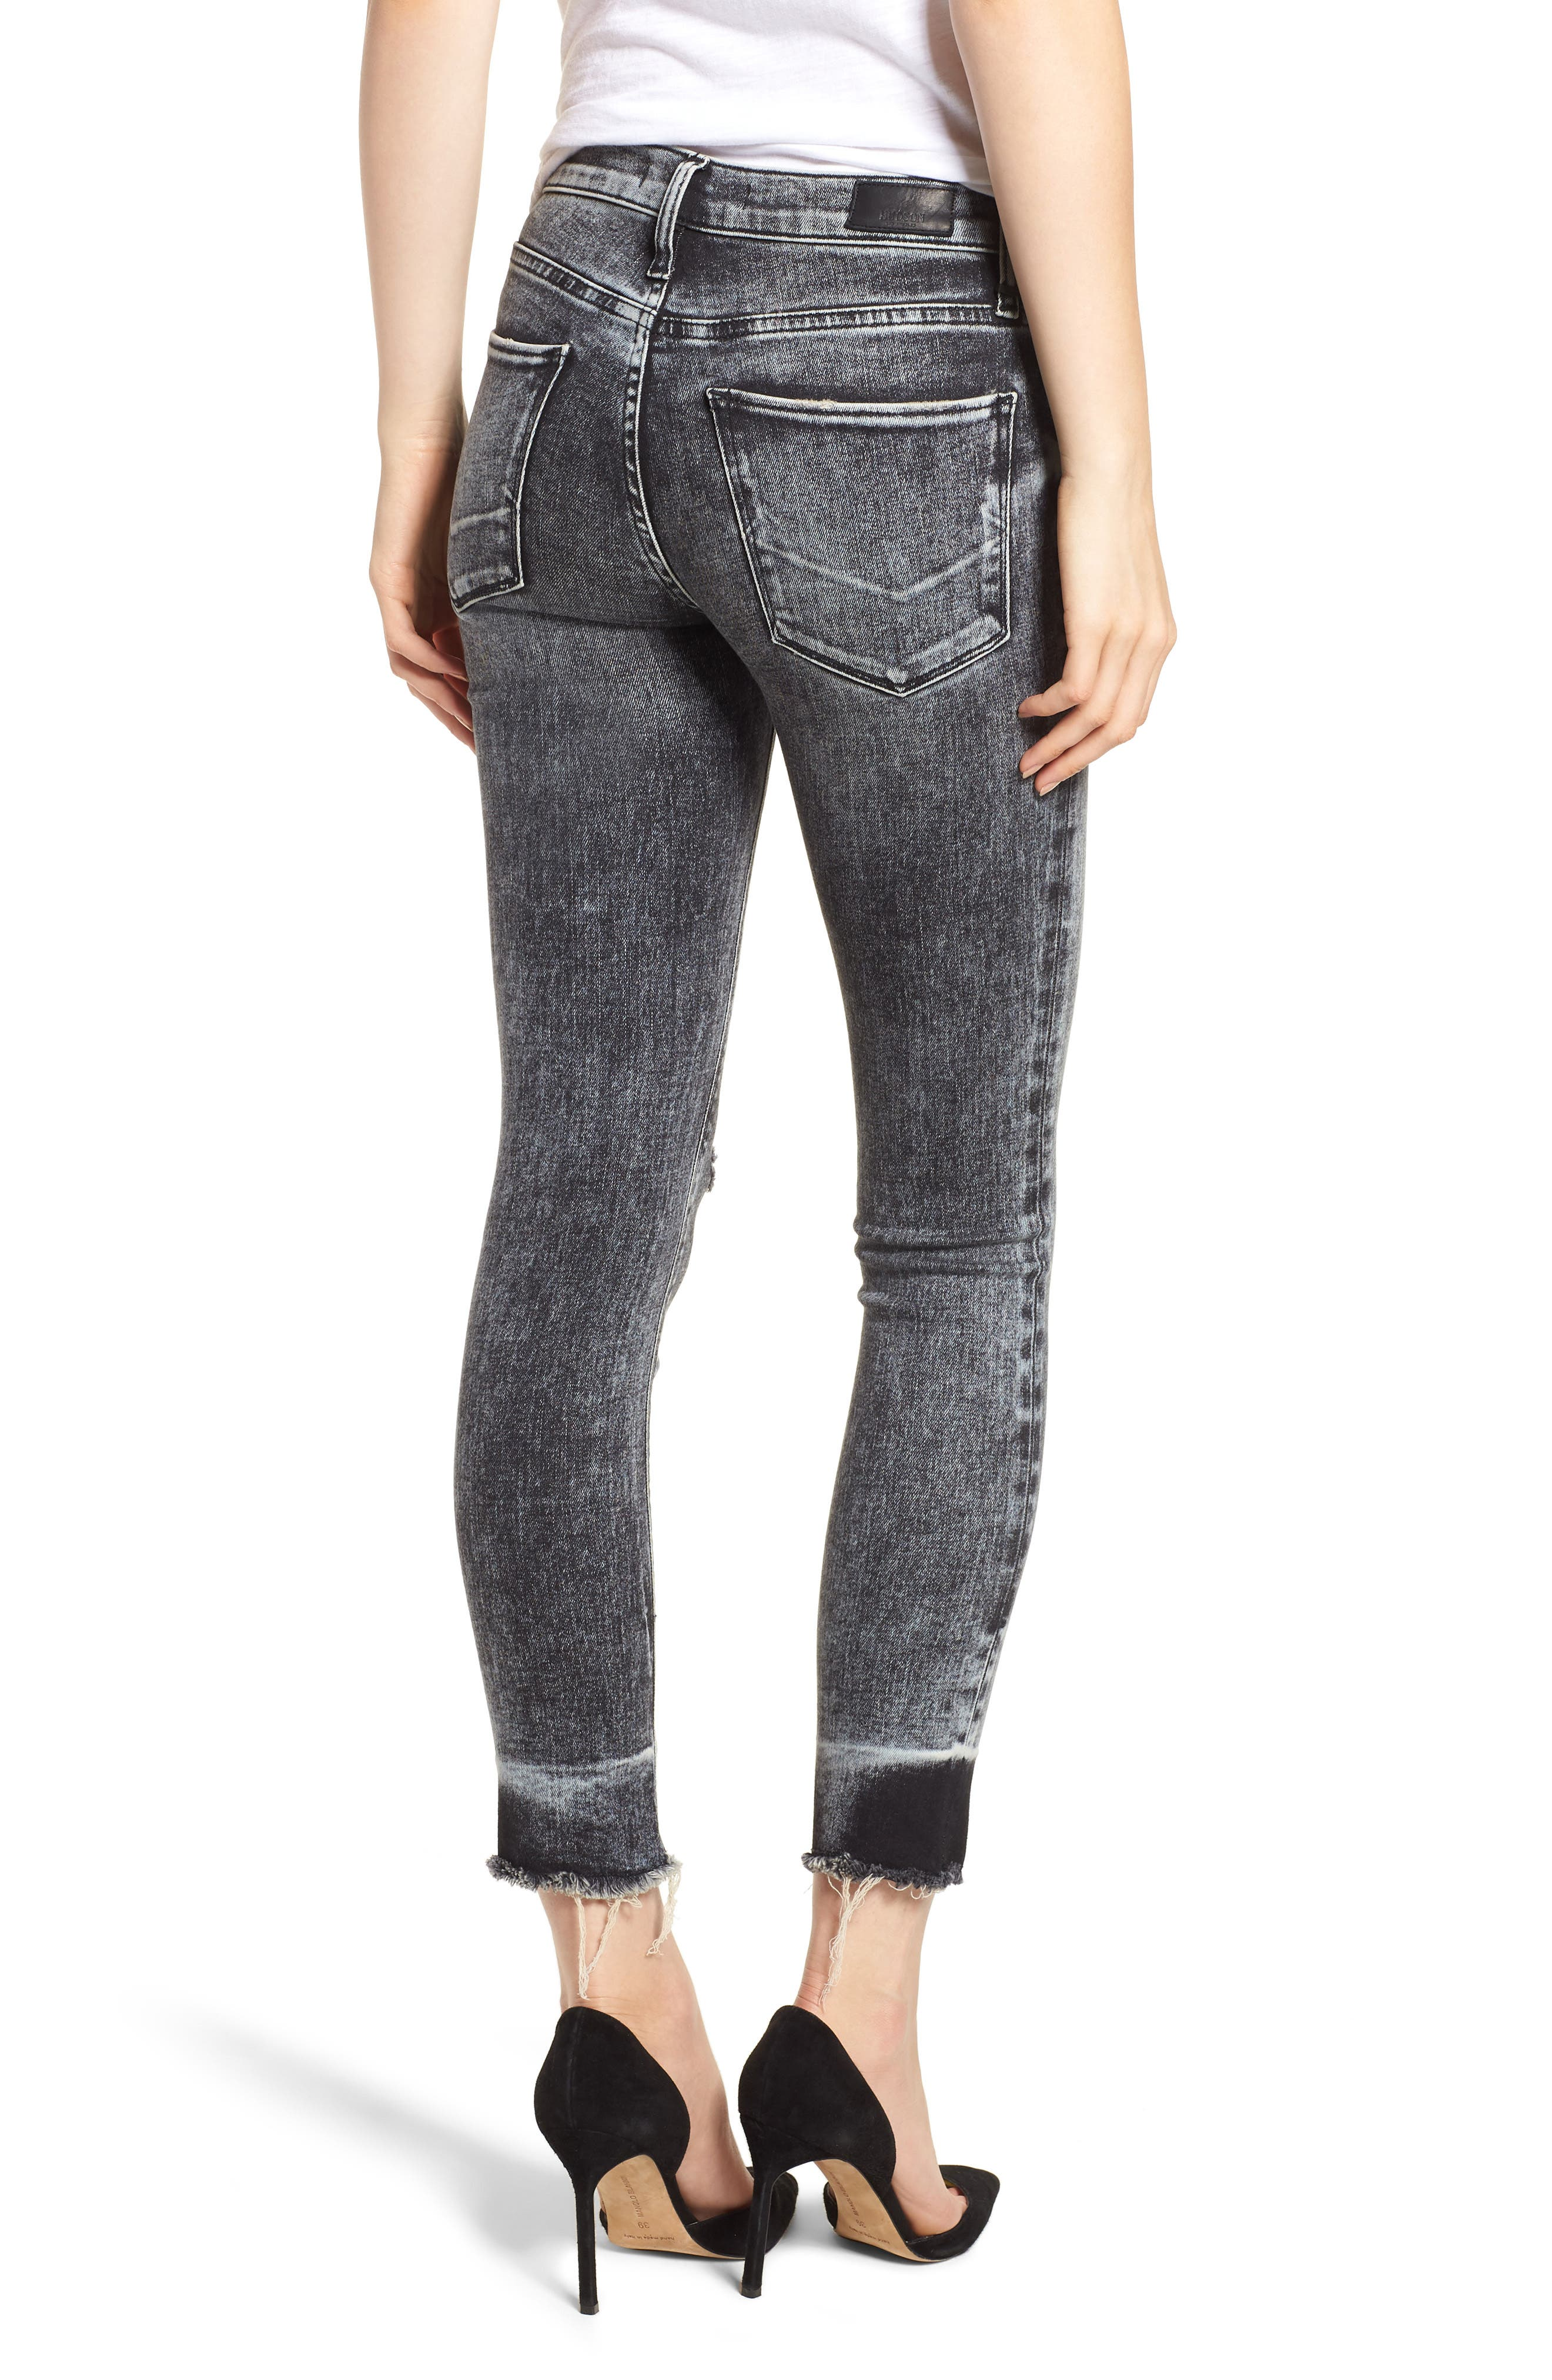 HUDSON JEANS, Nico Raw Hem Crop Super Skinny Jeans, Alternate thumbnail 2, color, PEPPER